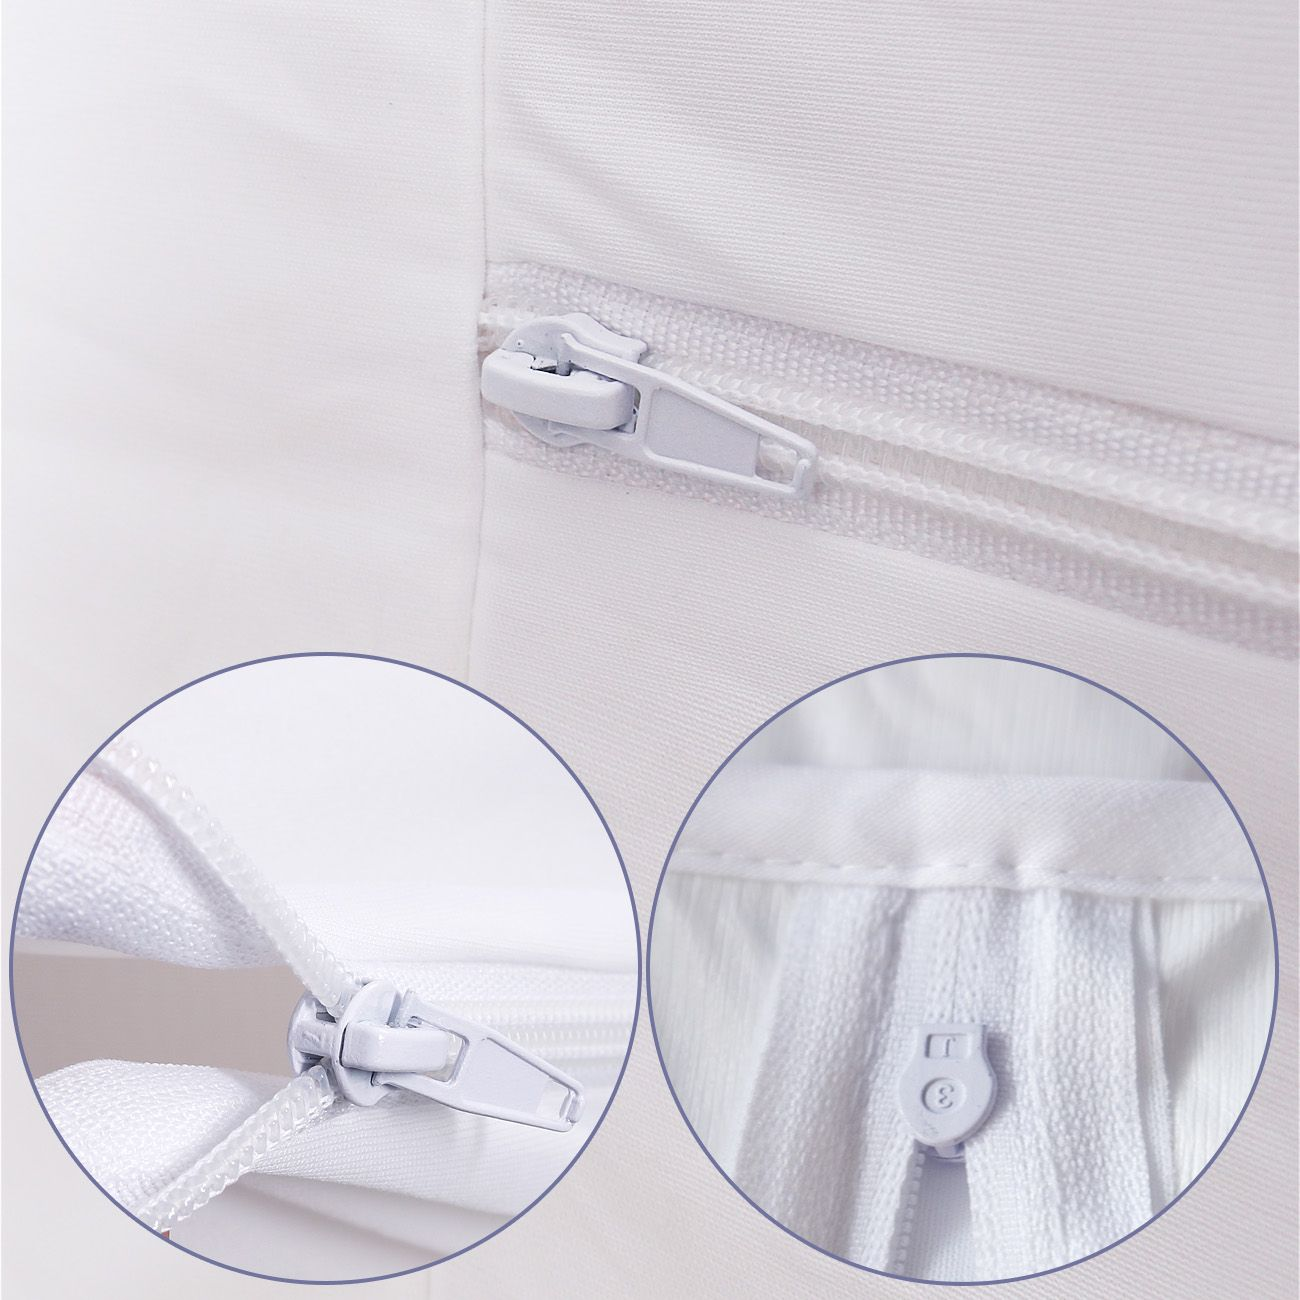 Bed Bug Proof Cover Mite Free Premium Waterproof Zippered Mattress Encasement Cover